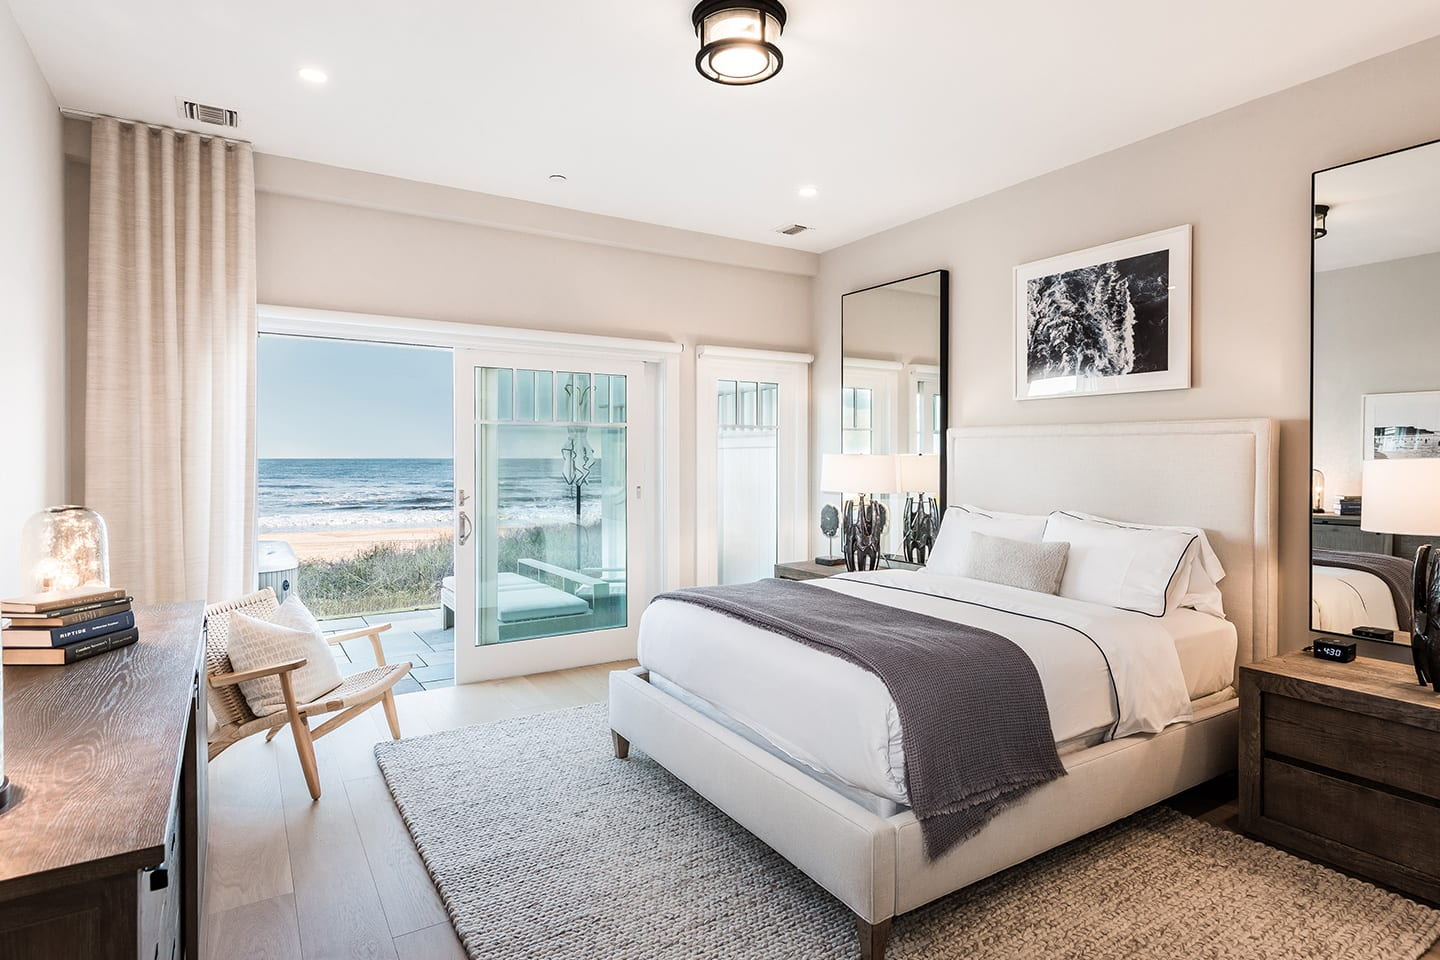 Salt Sea 5 Bedroom with patio, ocean views and a jacuzzi